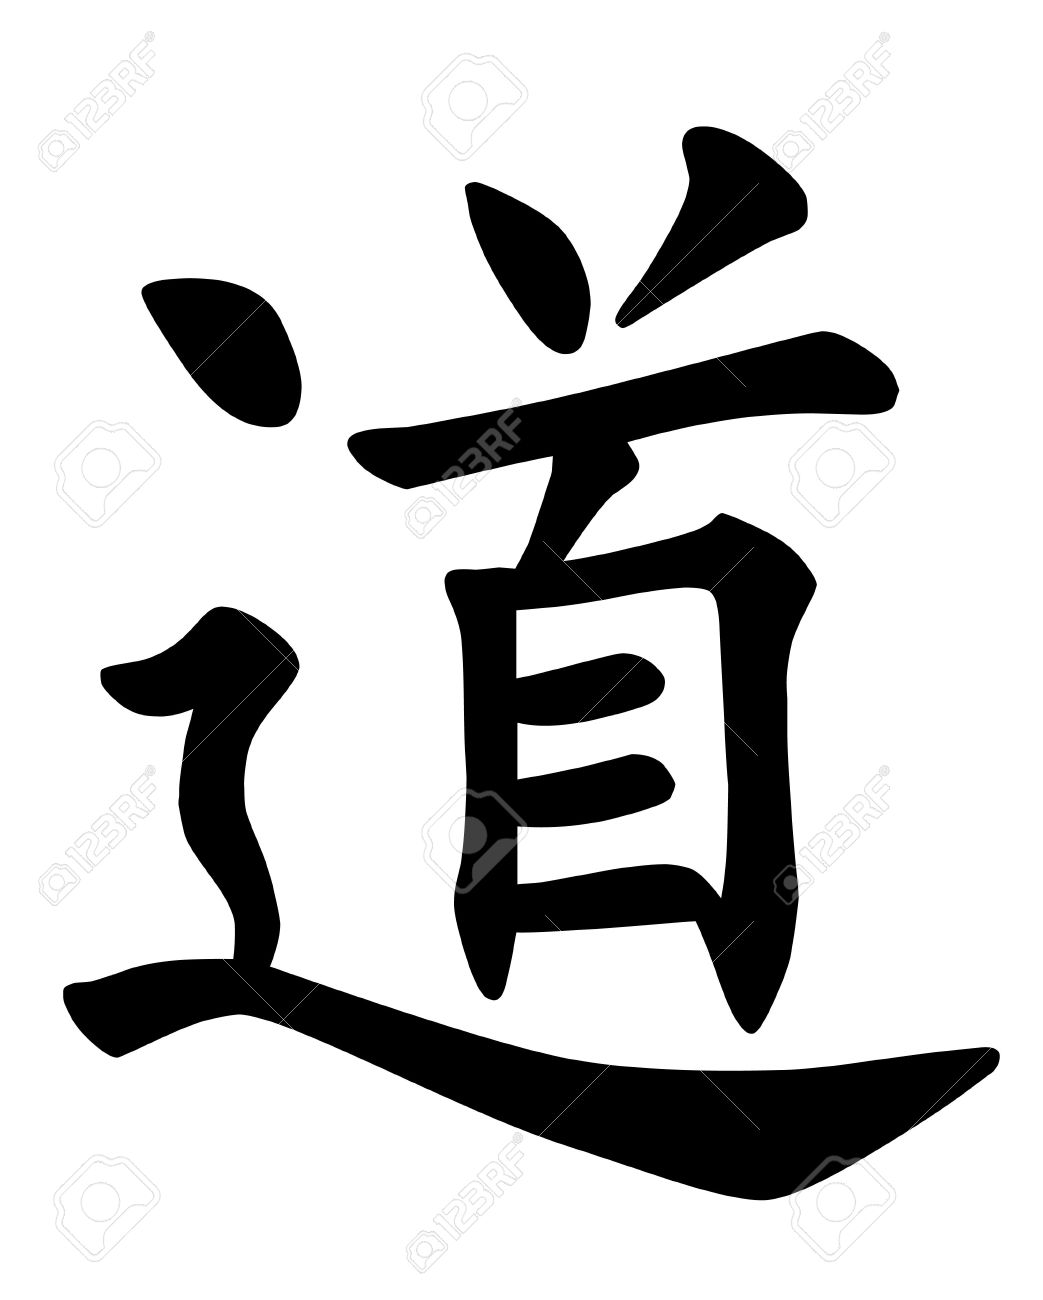 Chinese character tao stock photo picture and royalty free image chinese character tao stock photo 4670061 biocorpaavc Images